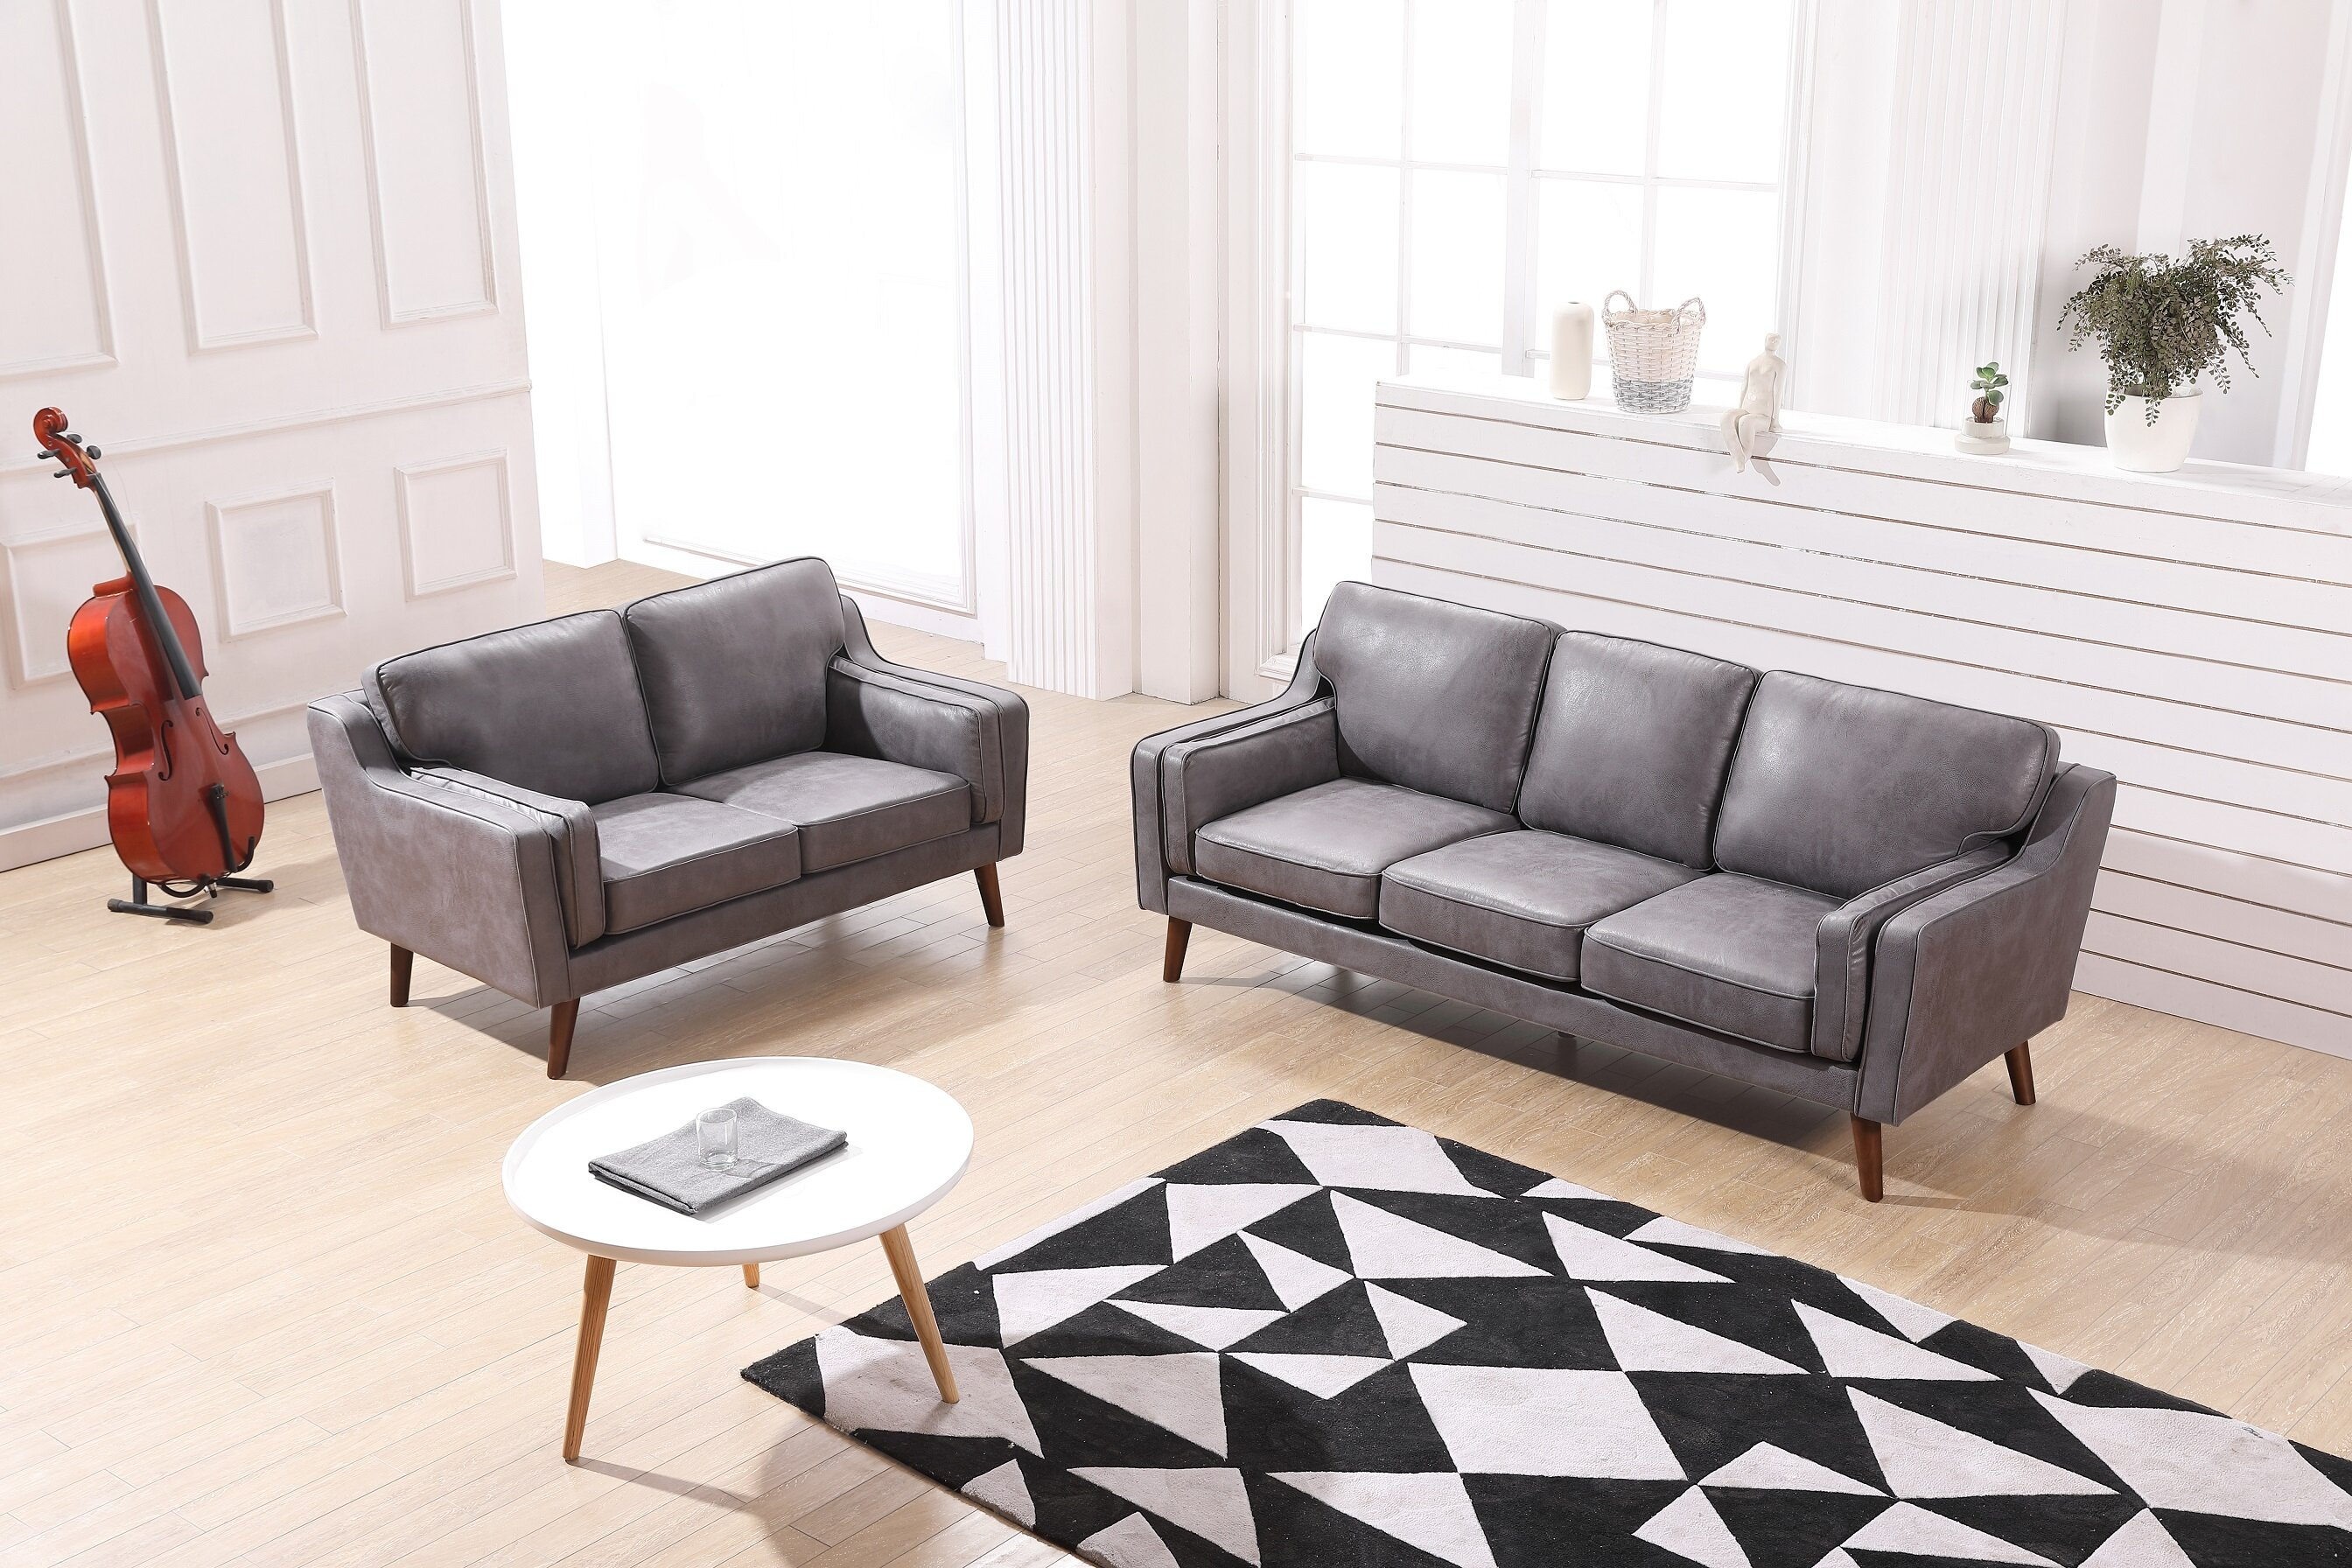 Westbury Modern Luxurious 2 Piece Living Room Set